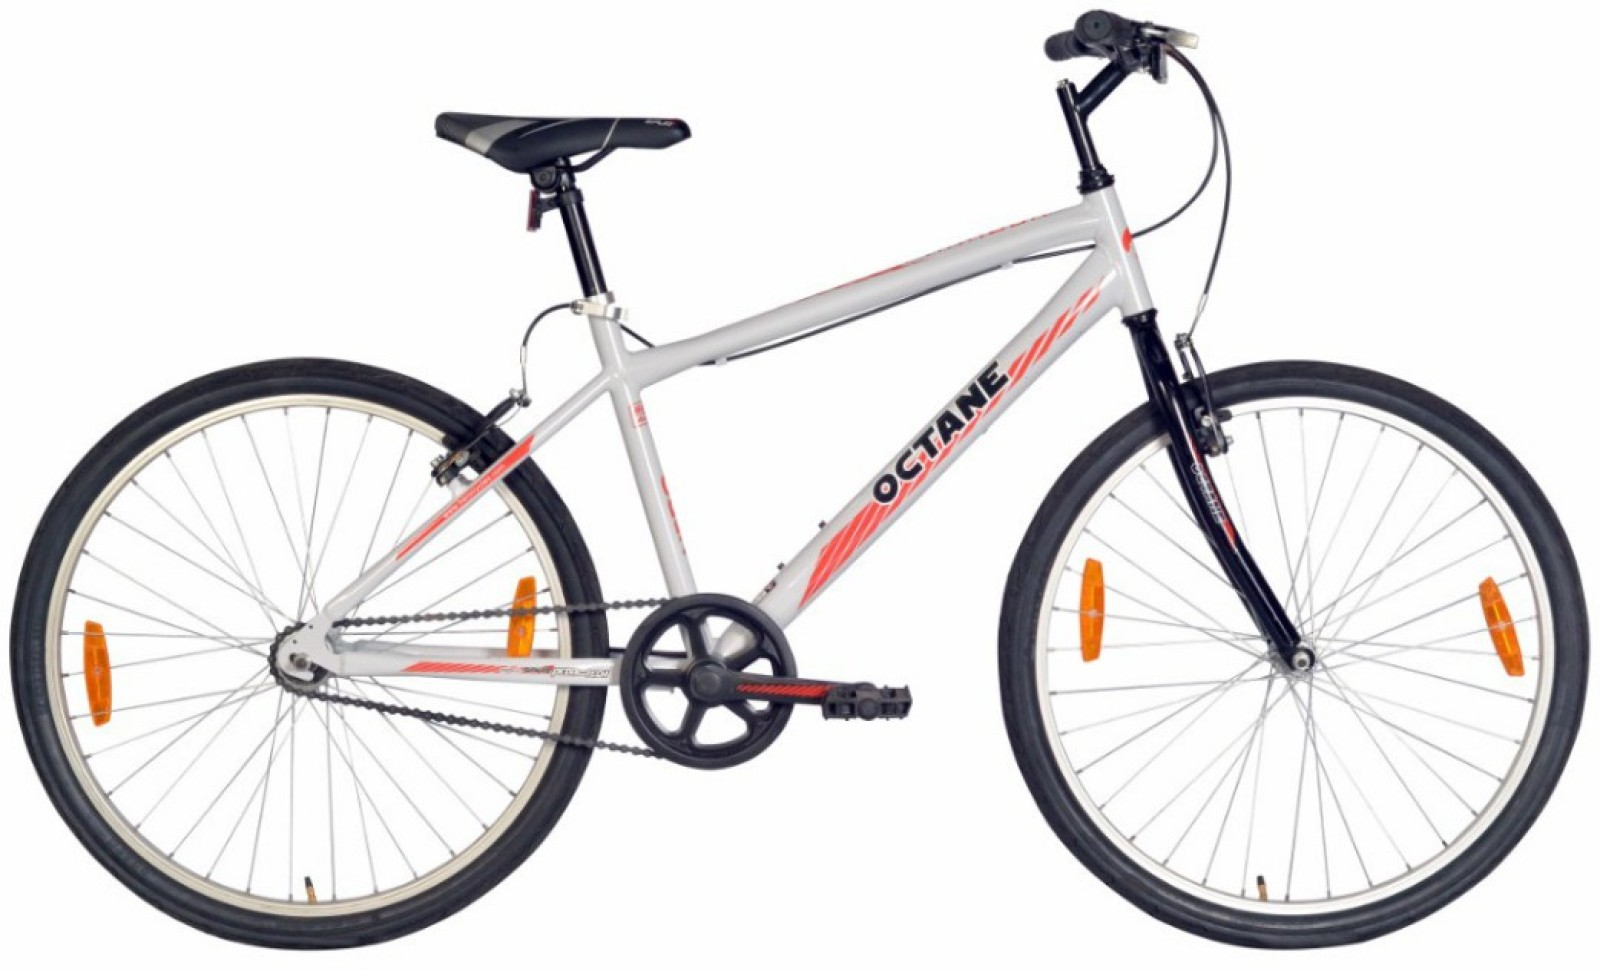 [ Price Drop ] Hero Octane Parkour 26T Single Speed Road Cycle at Rs. 4362